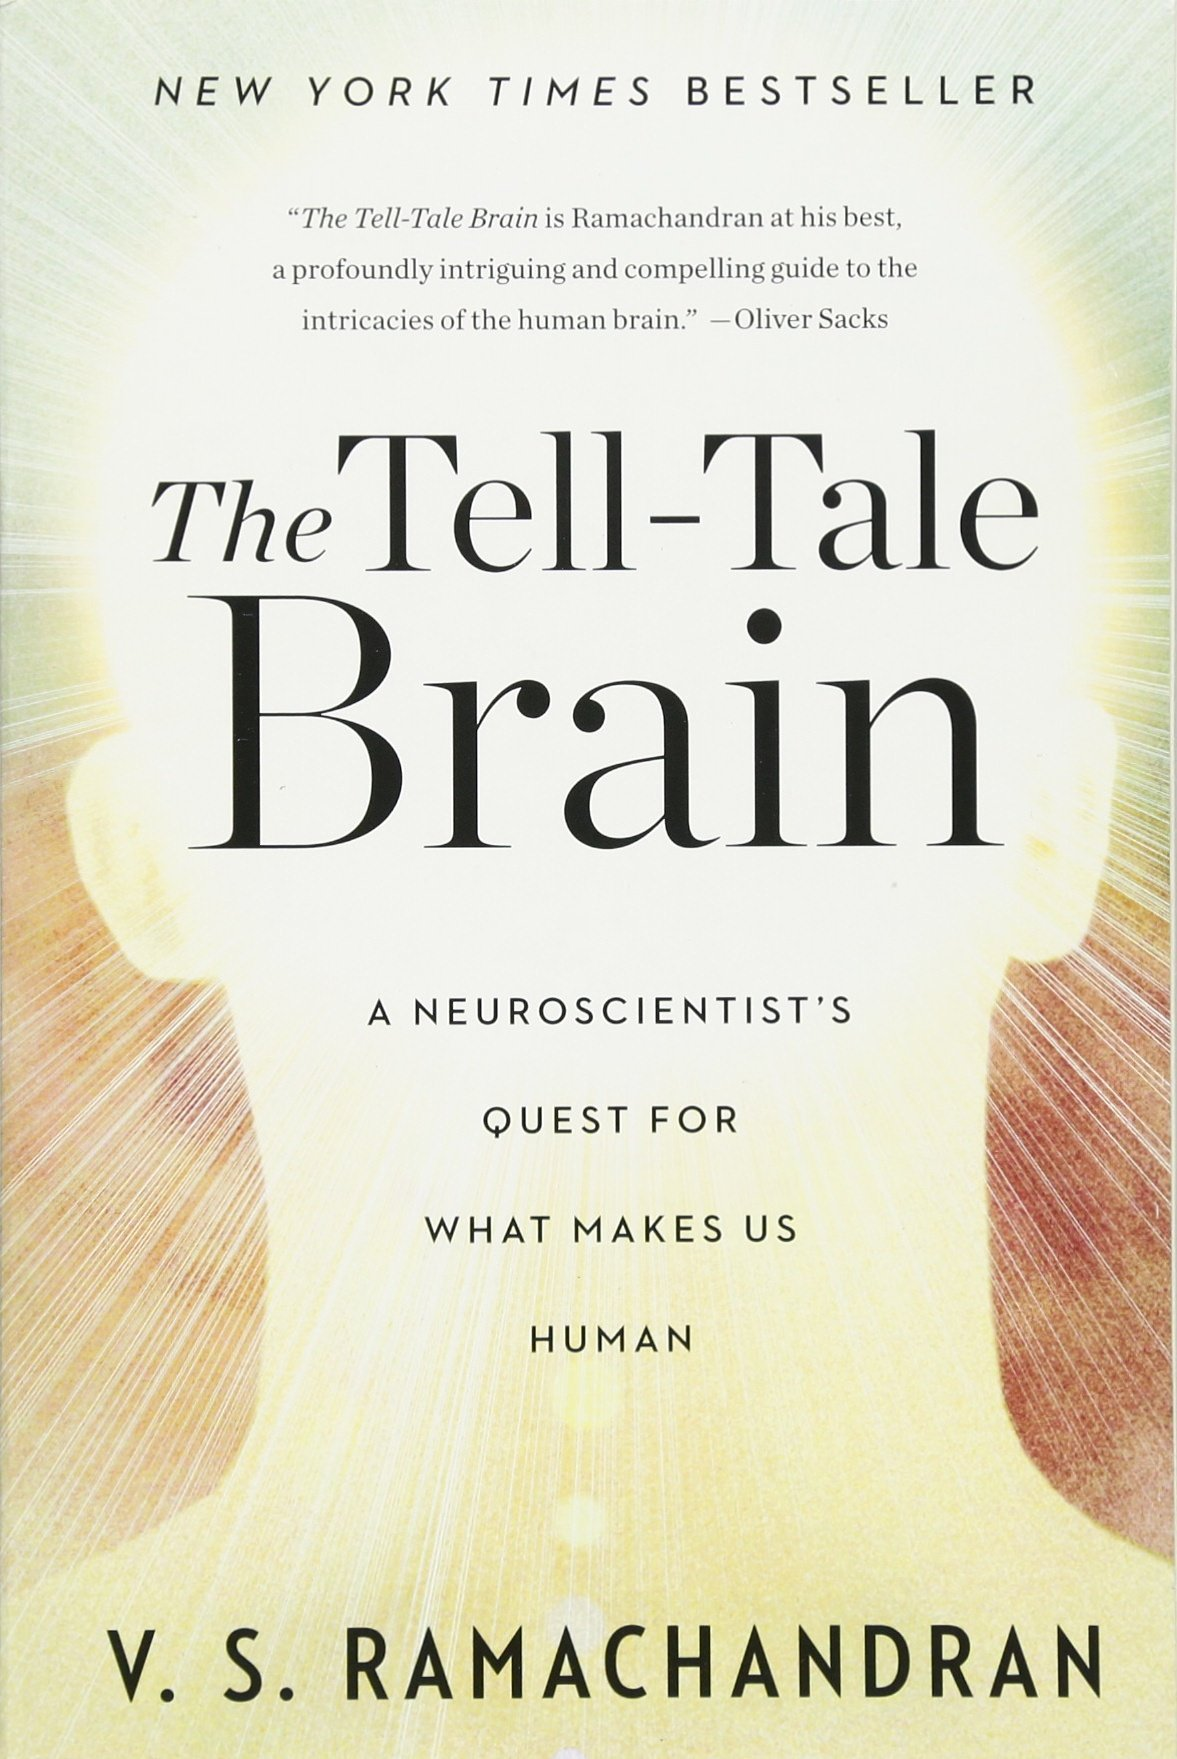 The human brain coloring book diamond - Buy The Tell Tale Brain A Neuroscientist S Quest For What Makes Us Human Book Online At Low Prices In India The Tell Tale Brain A Neuroscientist S